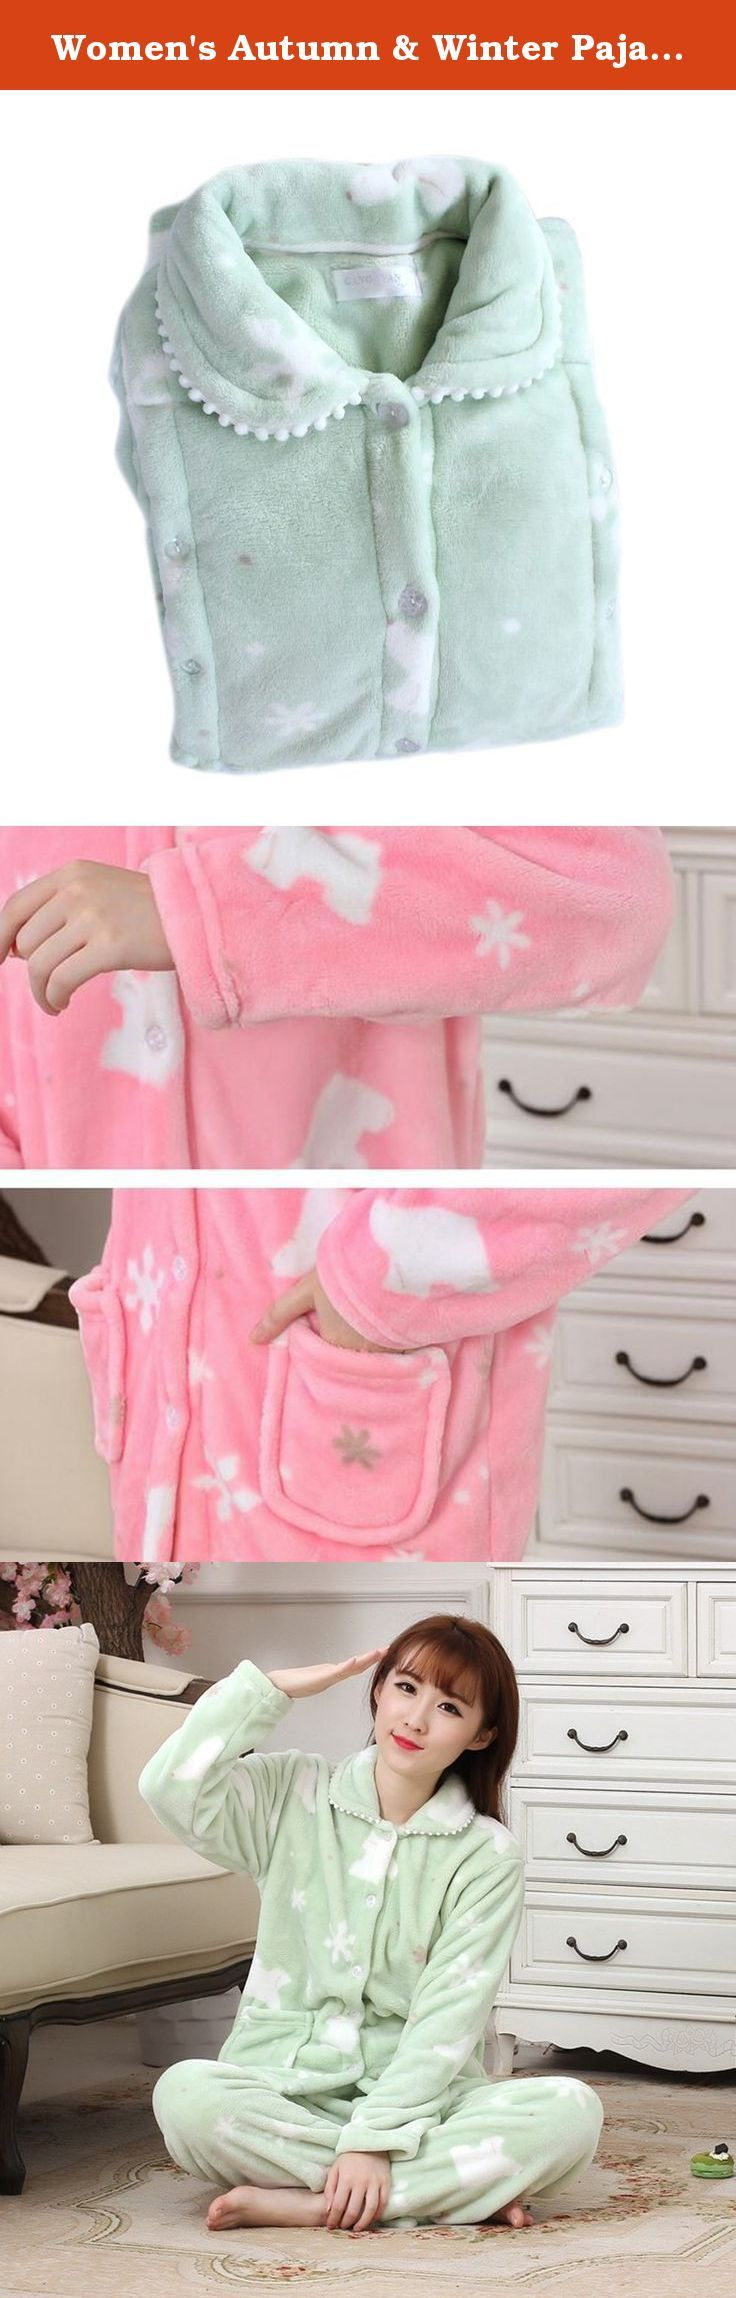 Women's Autumn & Winter Pajamas Thick Flannel Pregnancy Lactation Leisure Wear green M. Features: Natural fine fibers Soft and smooth Thick and warm Fast colors Waist size can be adjusted Parameters: Material: polyester fiber Weight: 350g Color: pink, green Size: M, L, XL Size Chest circumference (cm) Clothes length (cm) Pants length (cm) Waist Circumference (cm) Hip Circumference (cm) Shoulder width(cm) M 104 65 99 80-100 105 42 L 107 68 101 85-112 110 45 XL 110 70 103 88-114 115 48…